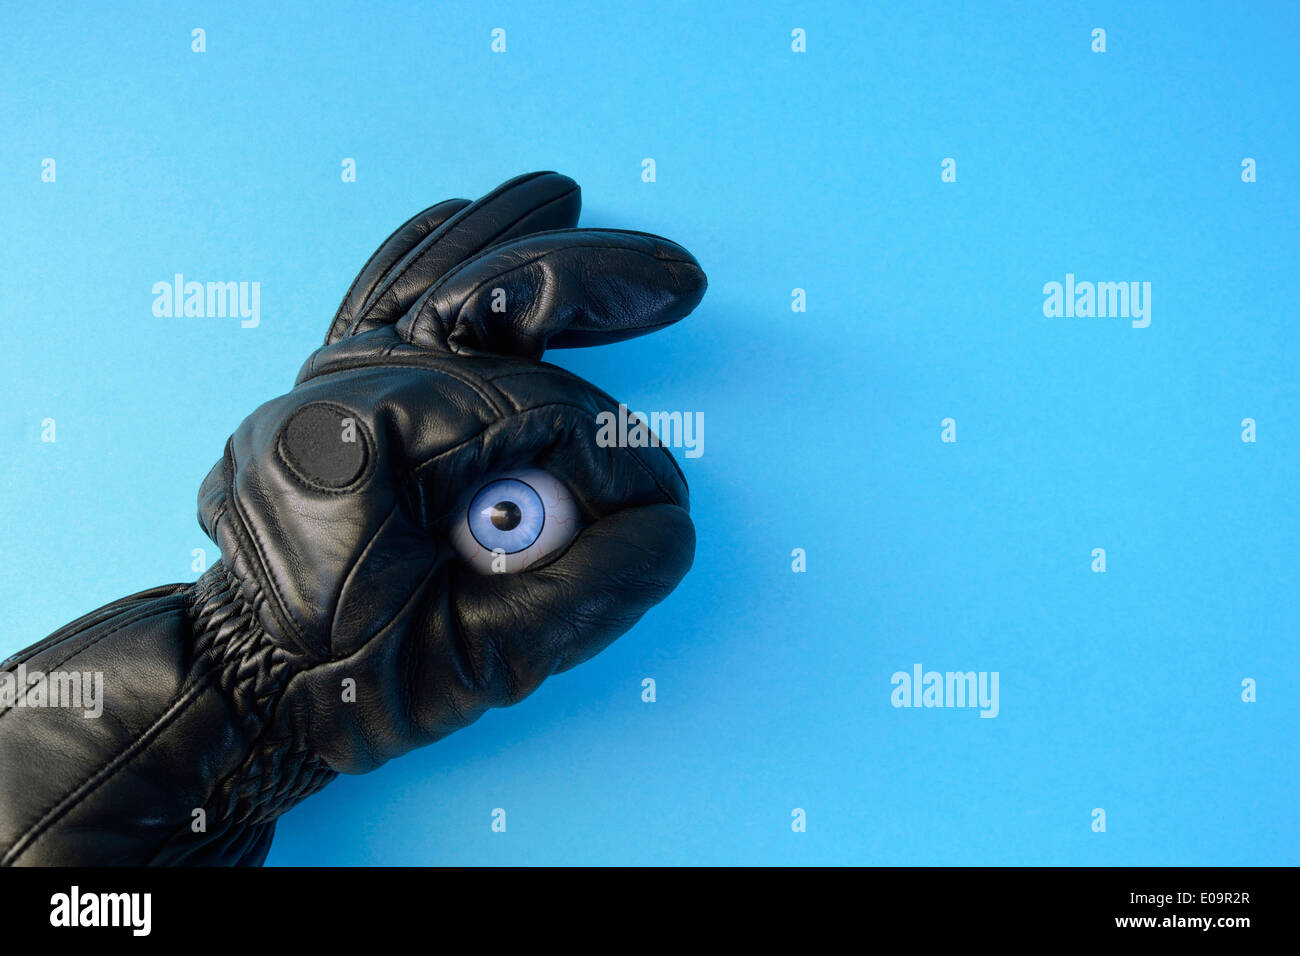 Leather glove and plastic eyeball in front of blue background - Stock Image